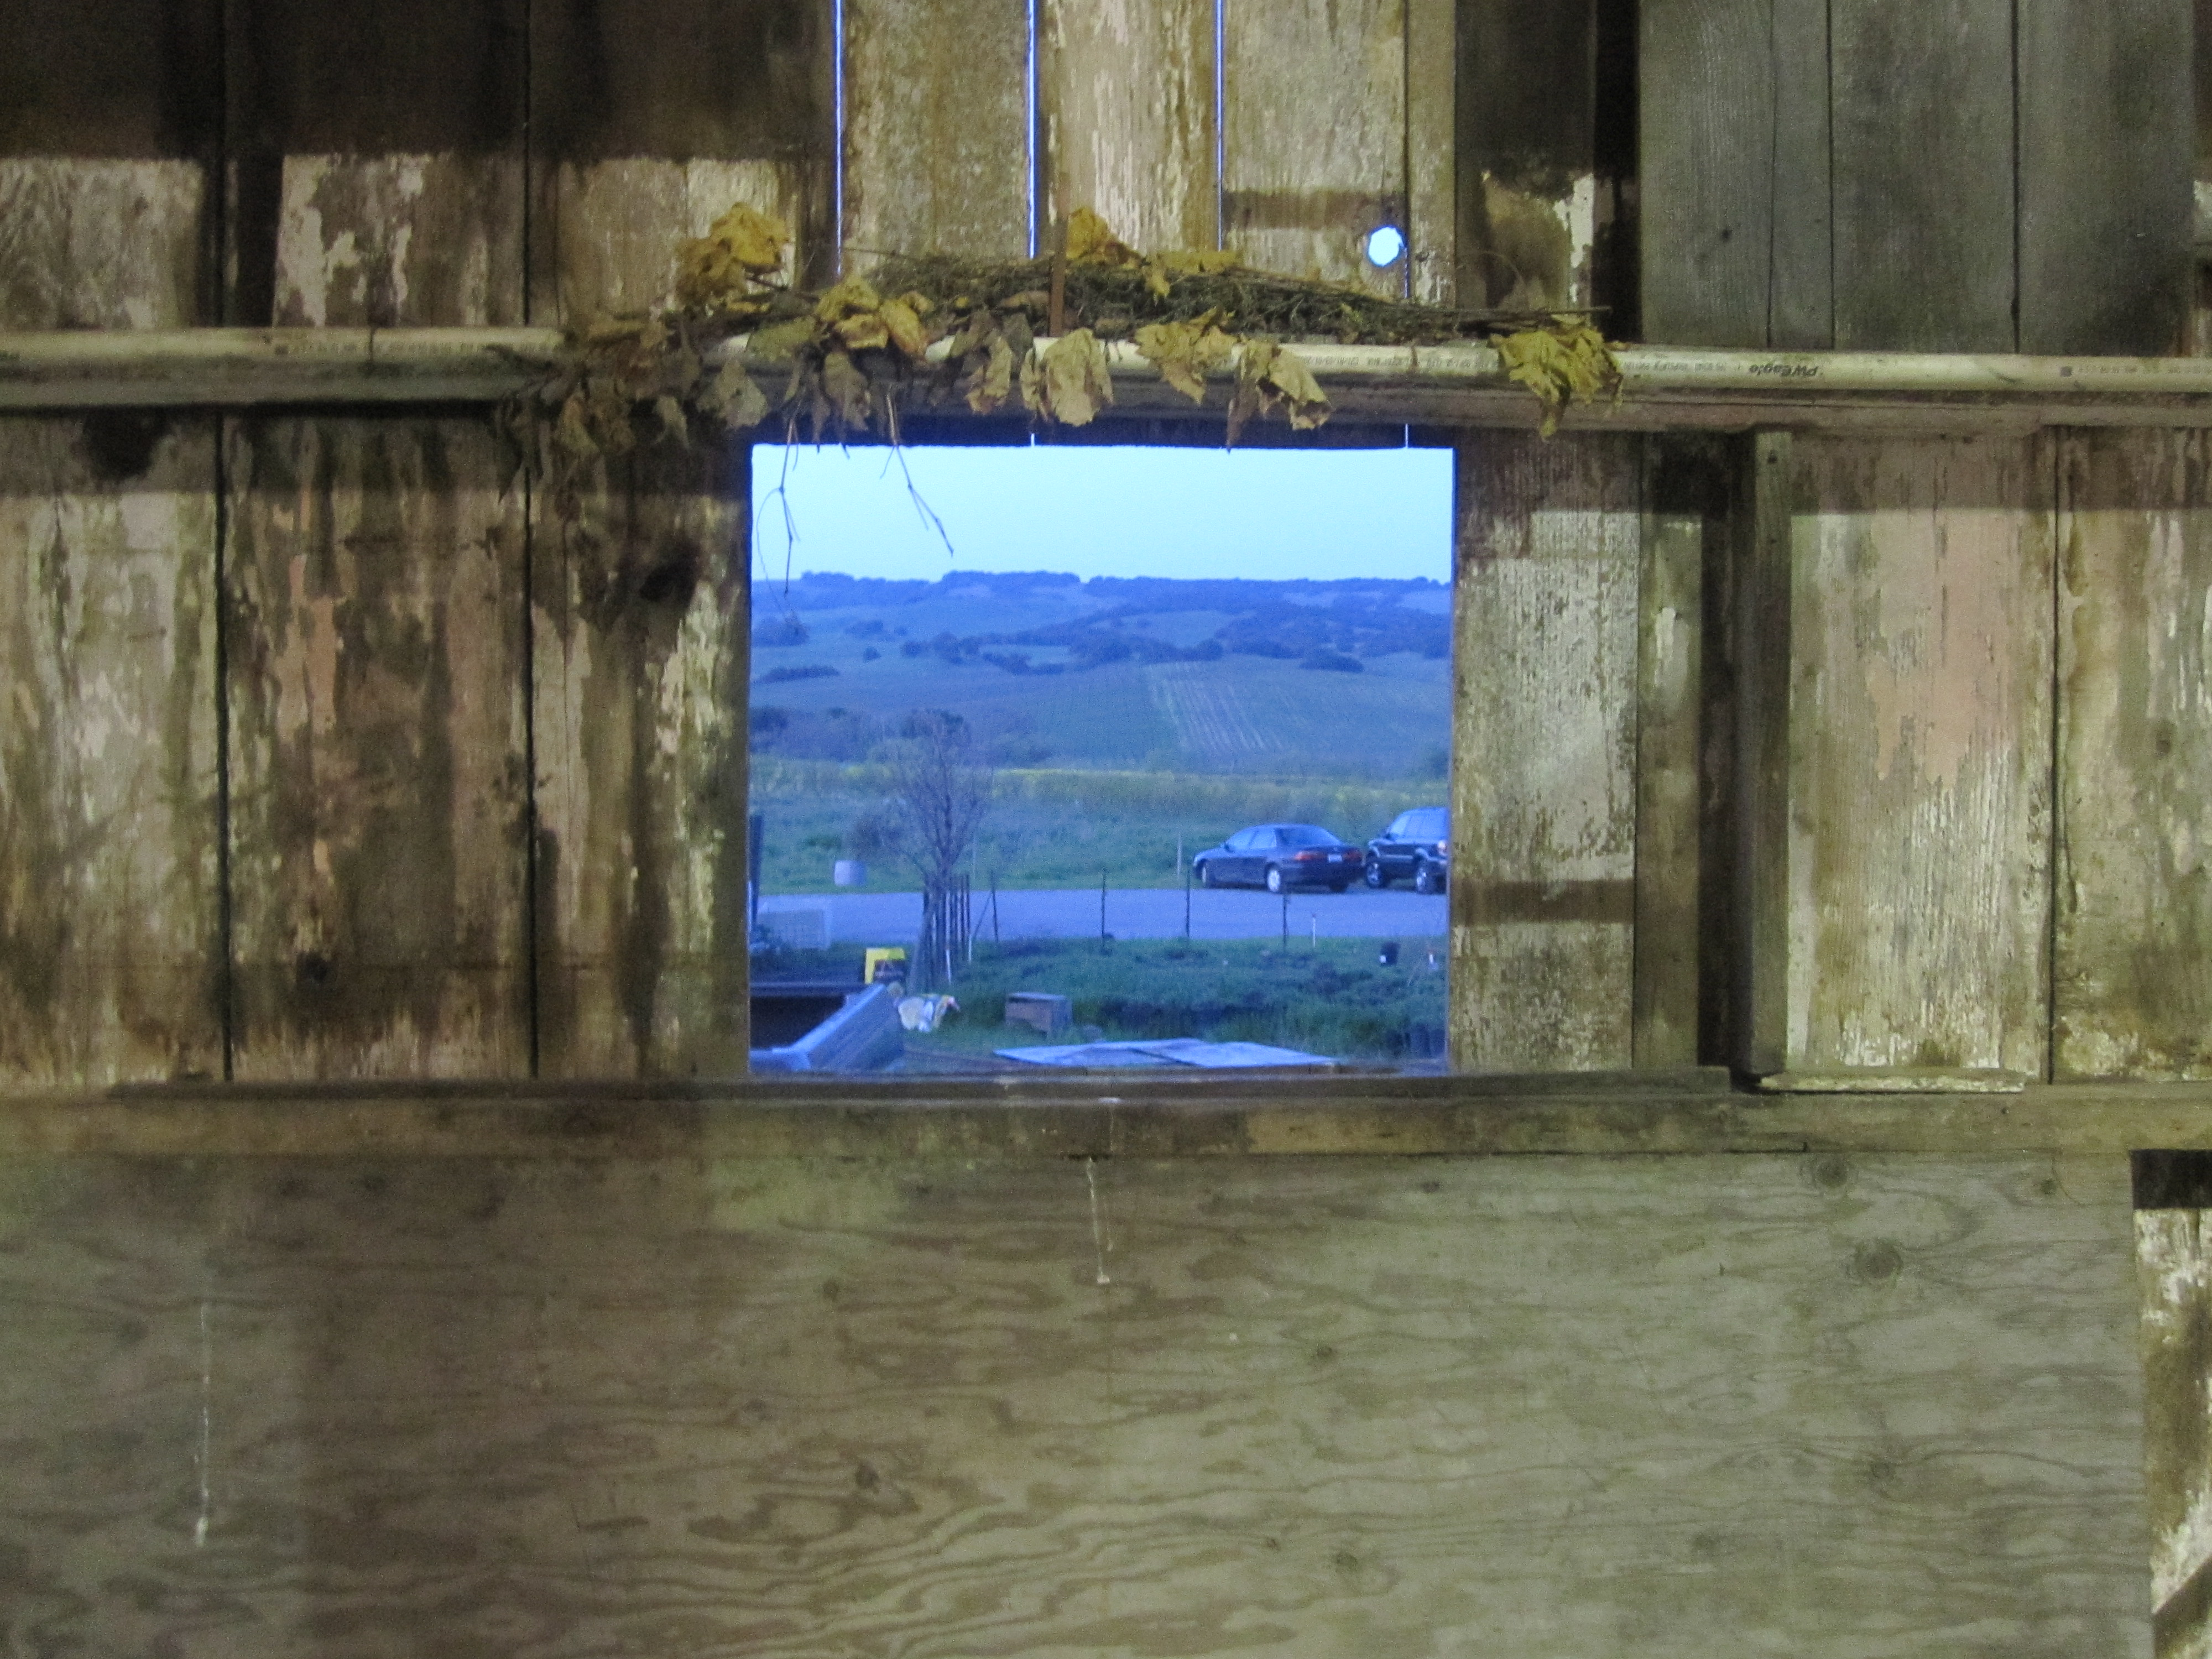 A small window in the barn looked out on the parking lot and fields.